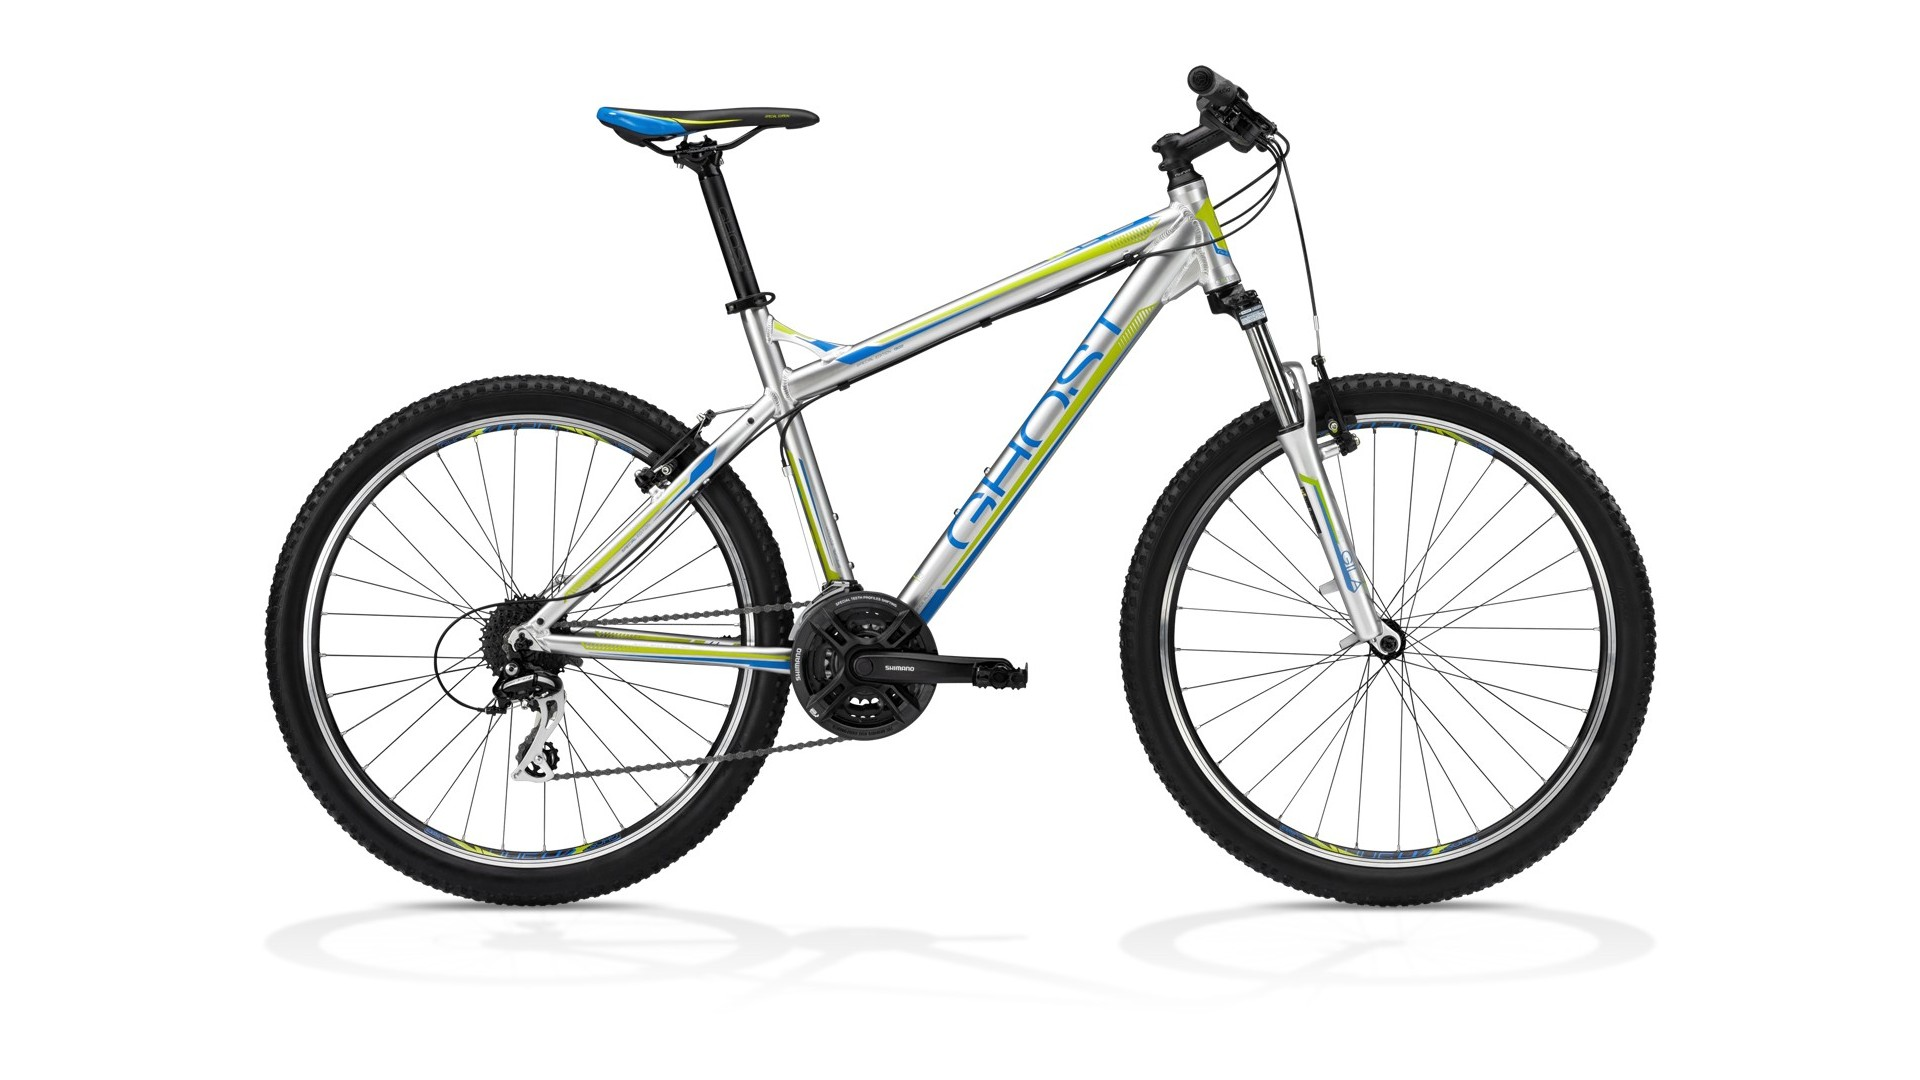 Велосипед GHOST SE 1300 grey/blue/lime green год 2013